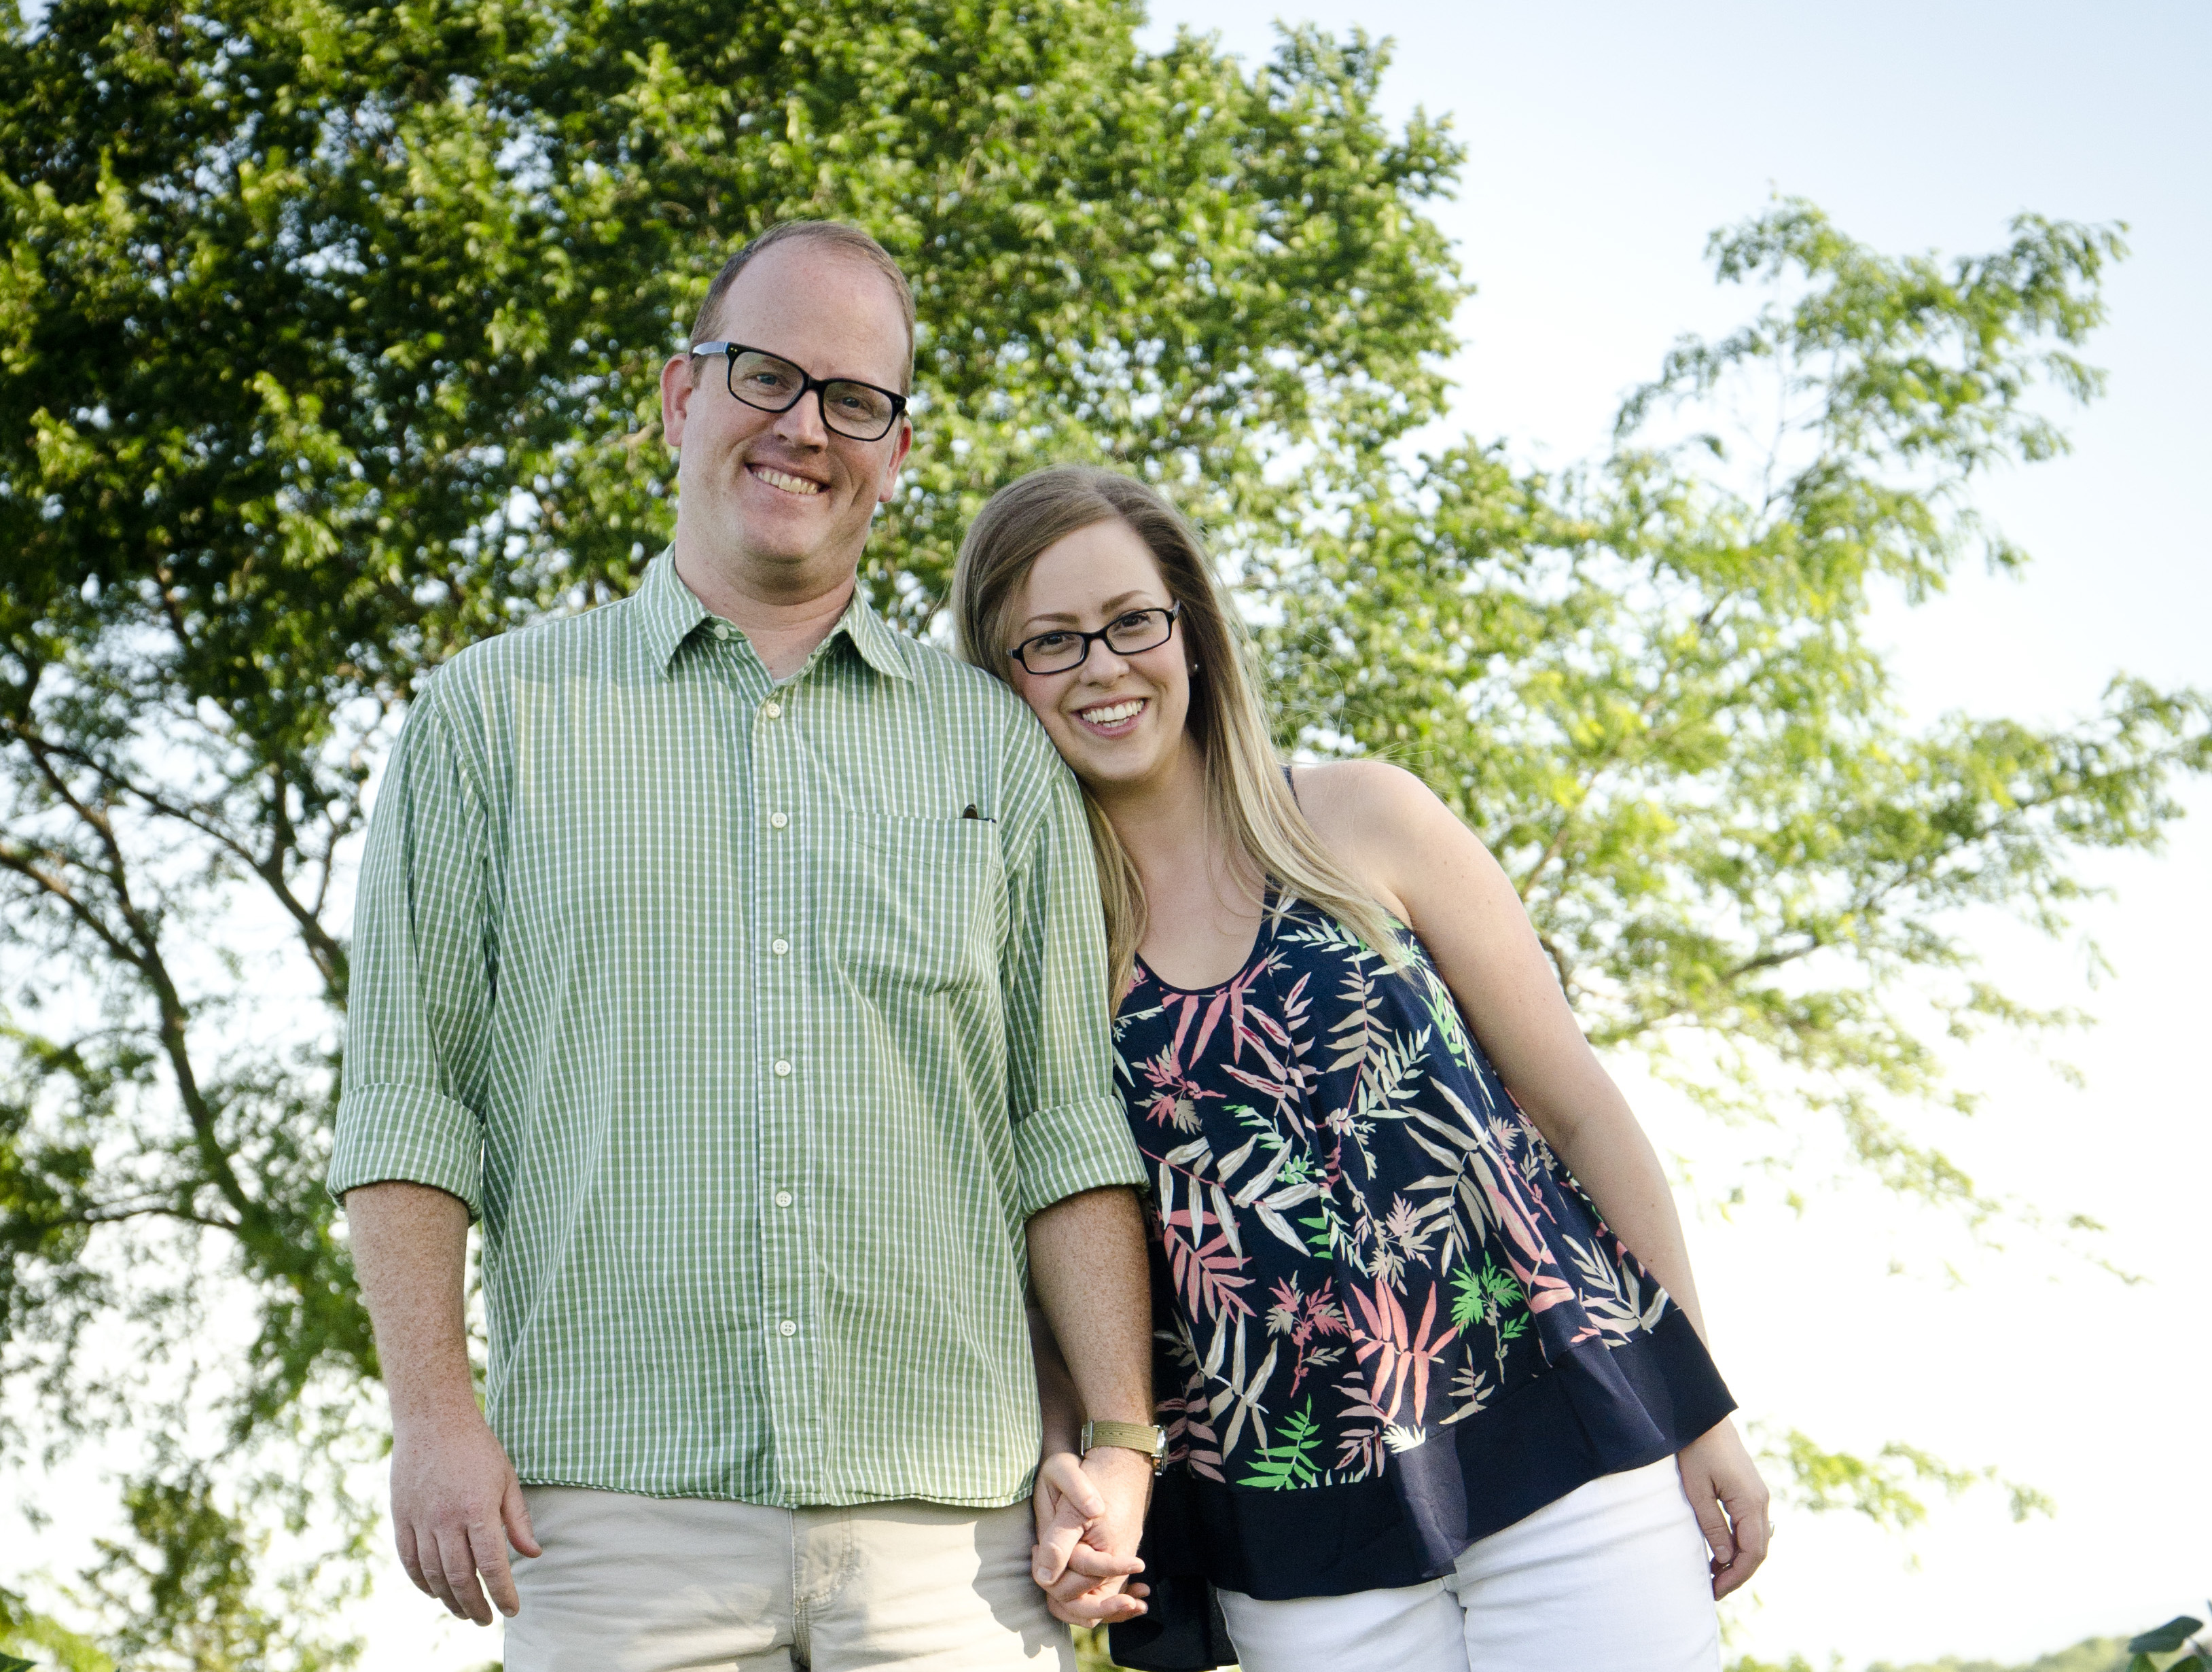 Mike and Kristen Henry Adoption is raising money on AdoptTogether for their adoption from United States.